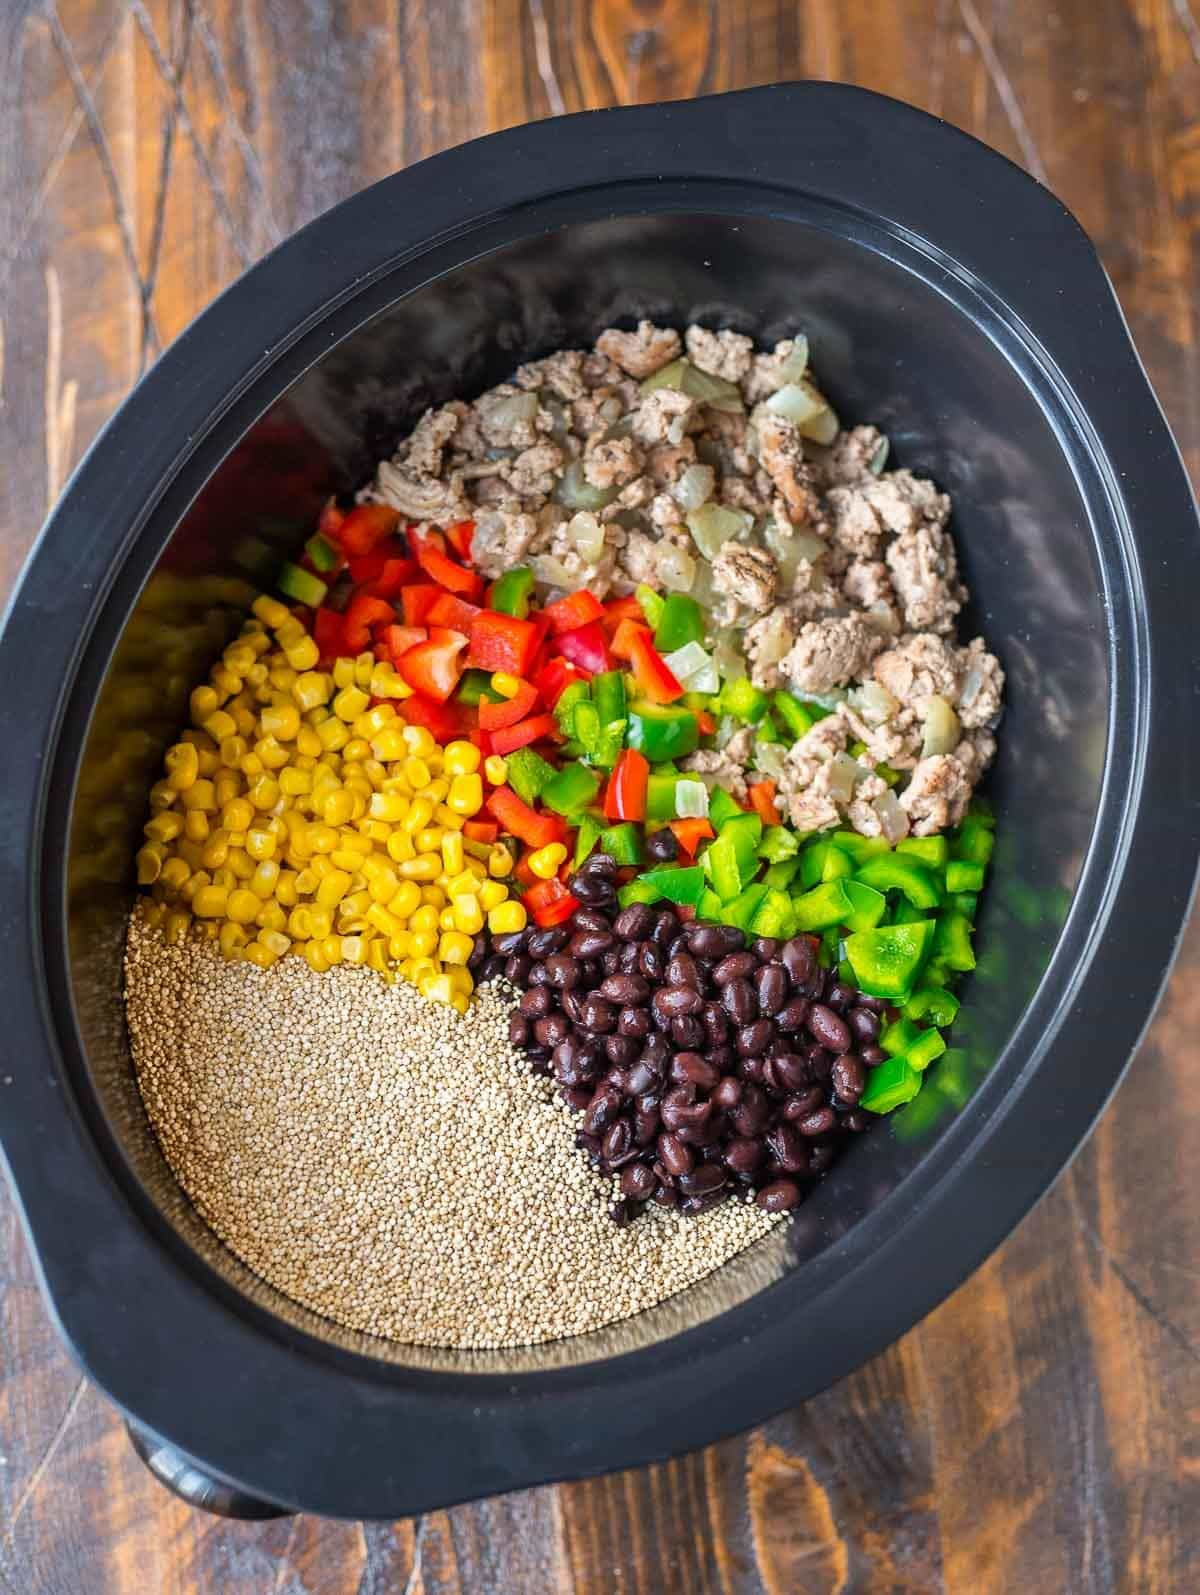 Healthy Crock Pot Recipes With Ground Beef  Crock Pot Mexican Casserole